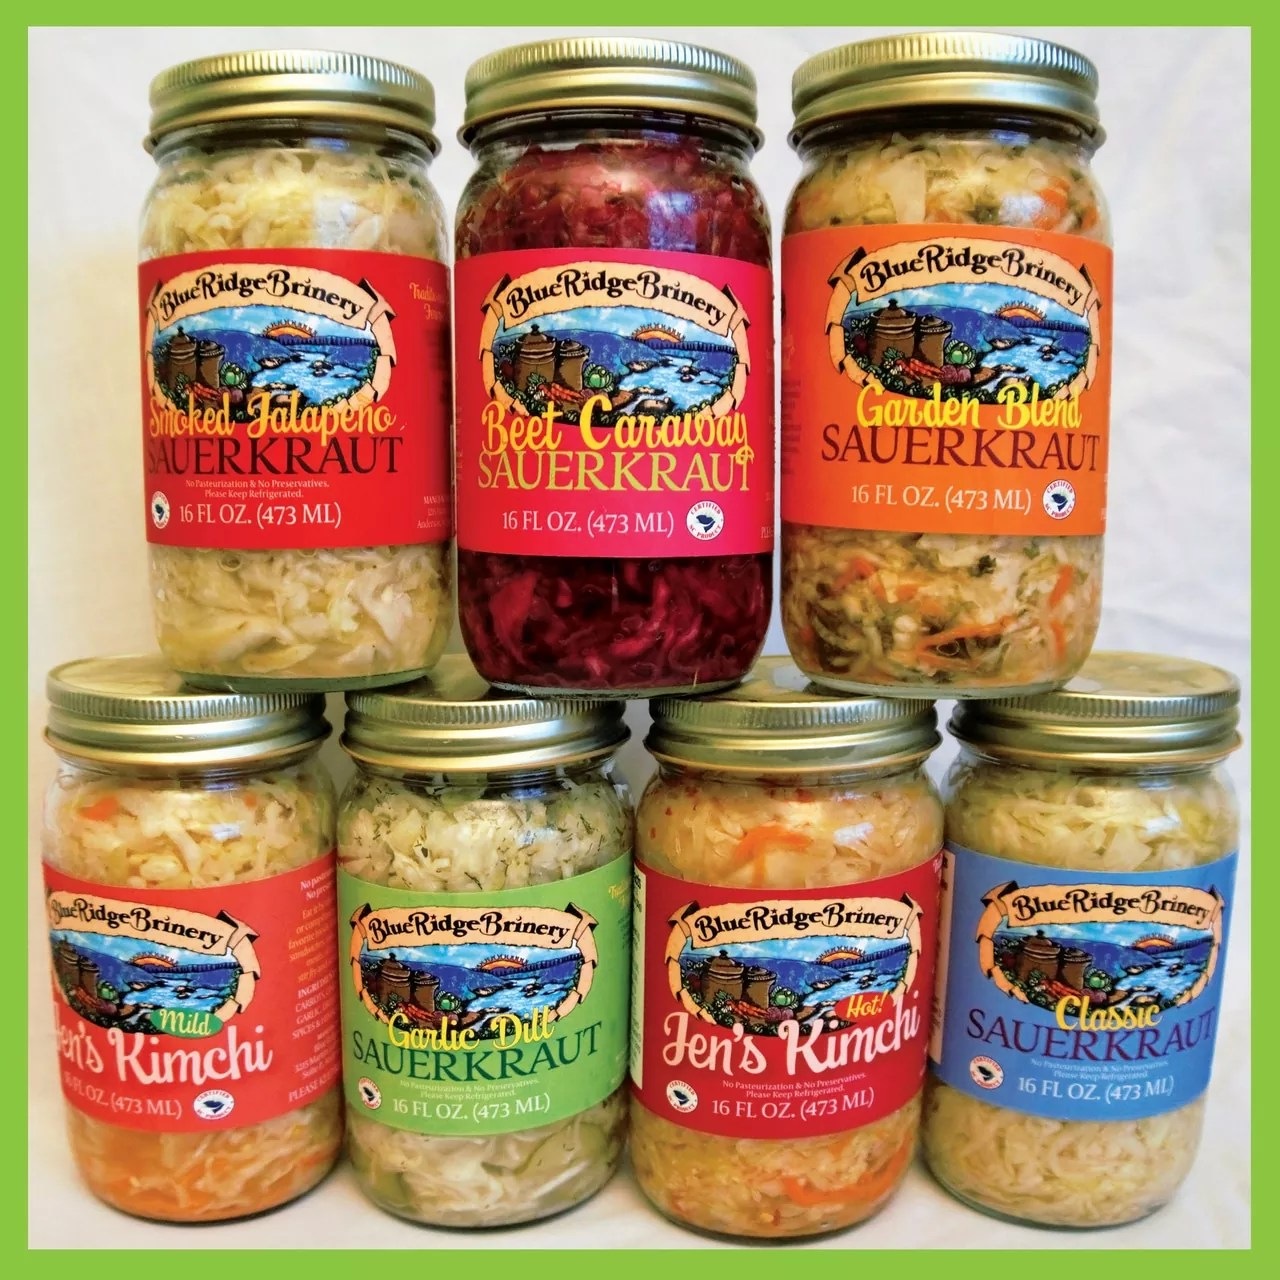 Blue Ridge Brinery Herbs and Spices